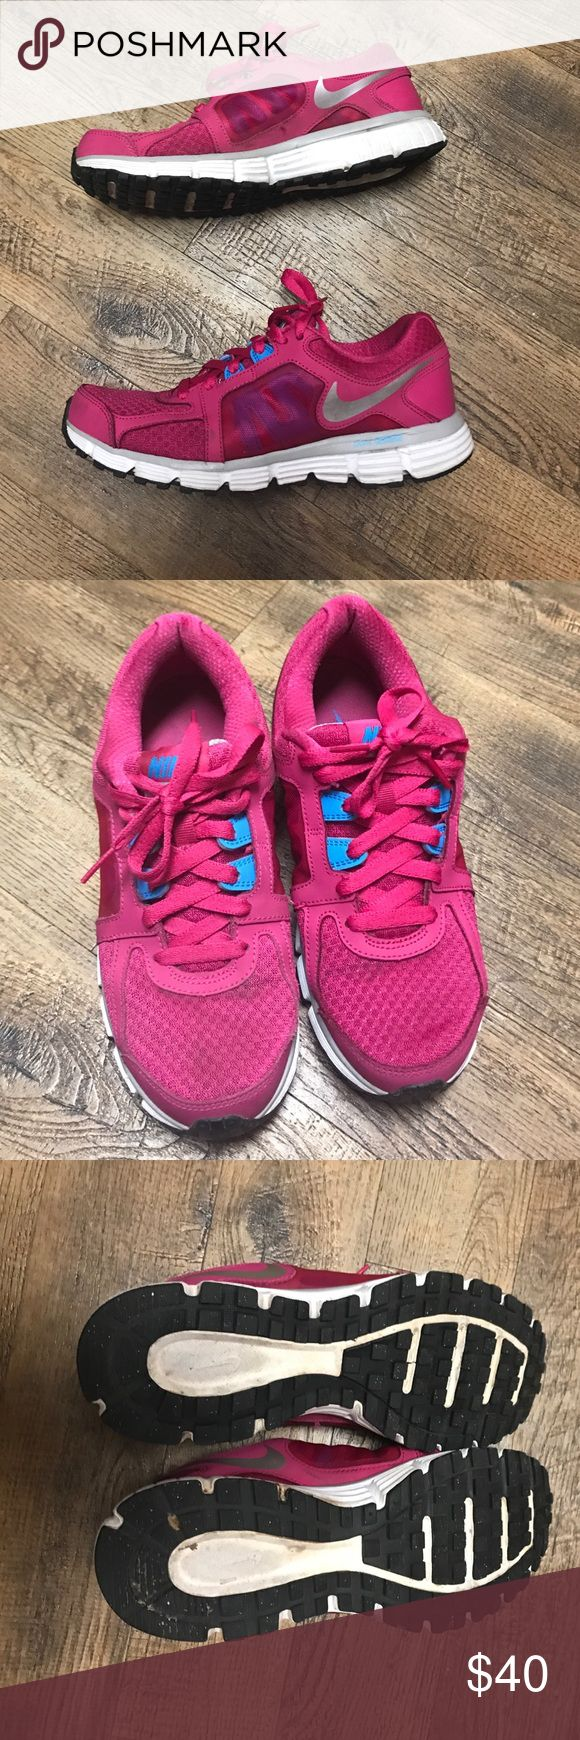 Women's Nike dual fusion ST 2 Pink Sneakers Sz 8.5 Gently worn, still good condition Pink Nike women's sneakers - size 8.5 Nike Shoes Sneakers